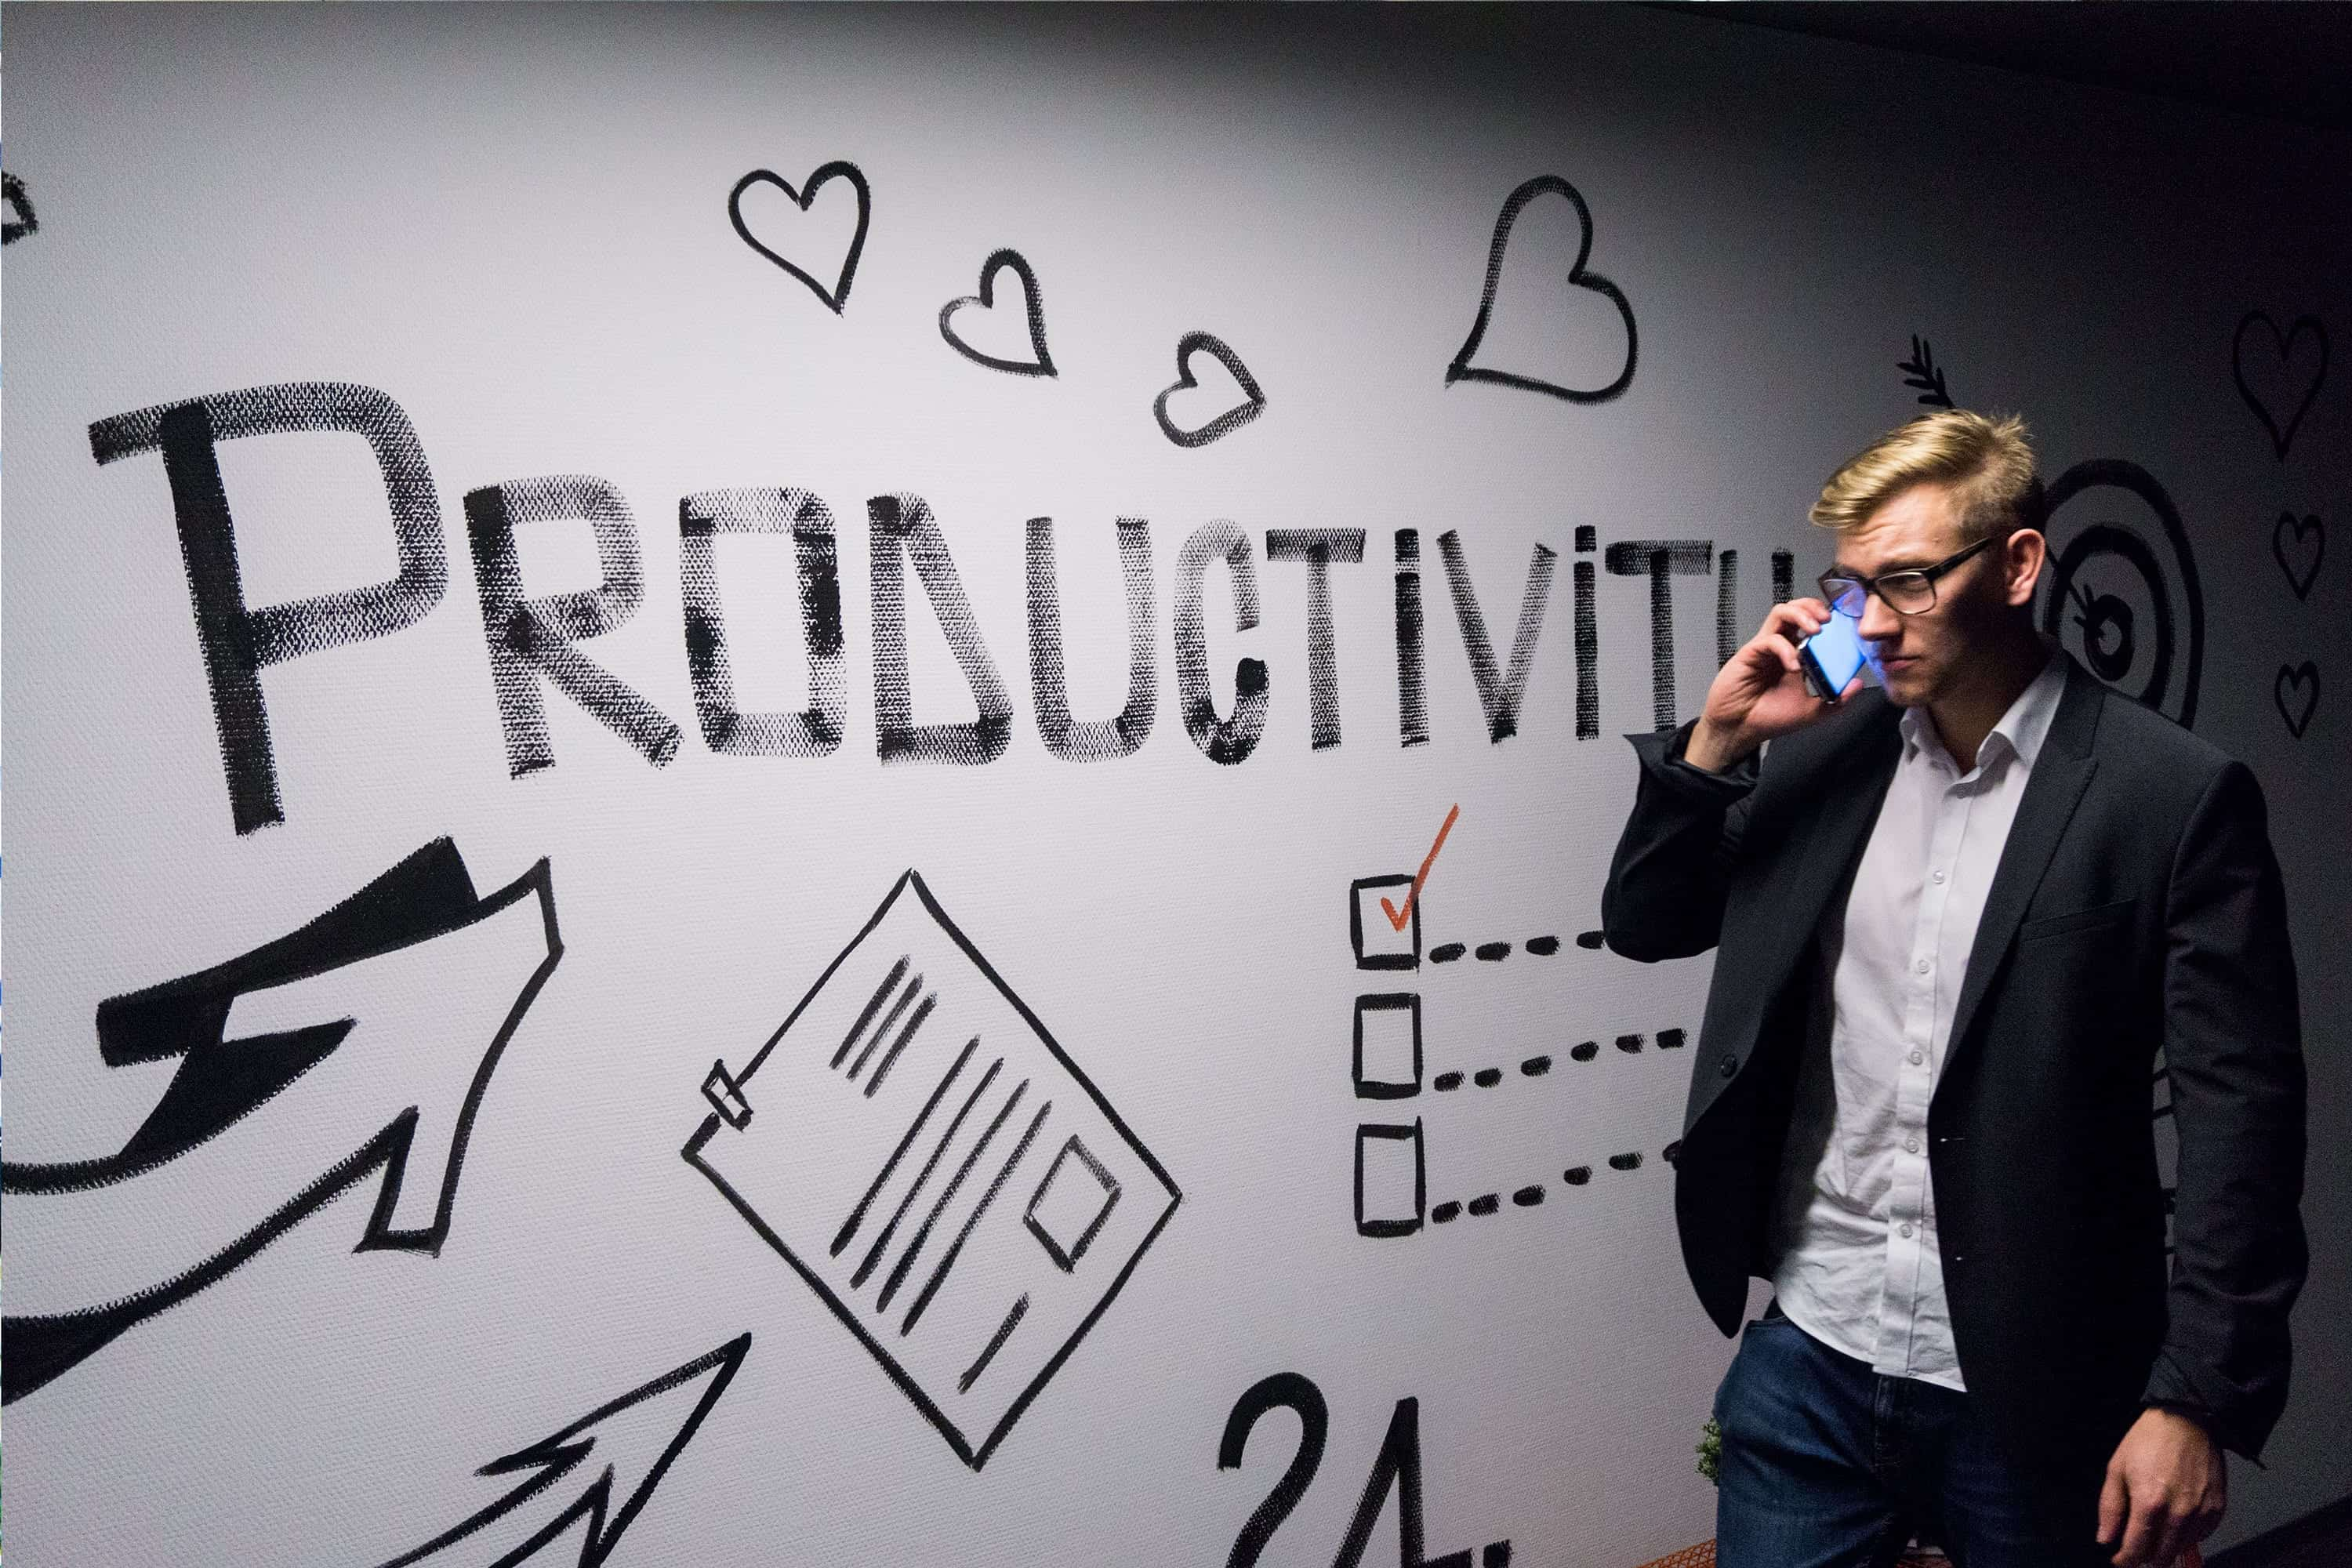 Man holding smartphone looking at whiteboard about productivity; image by Andreas Klassen, via Unsplash.com.